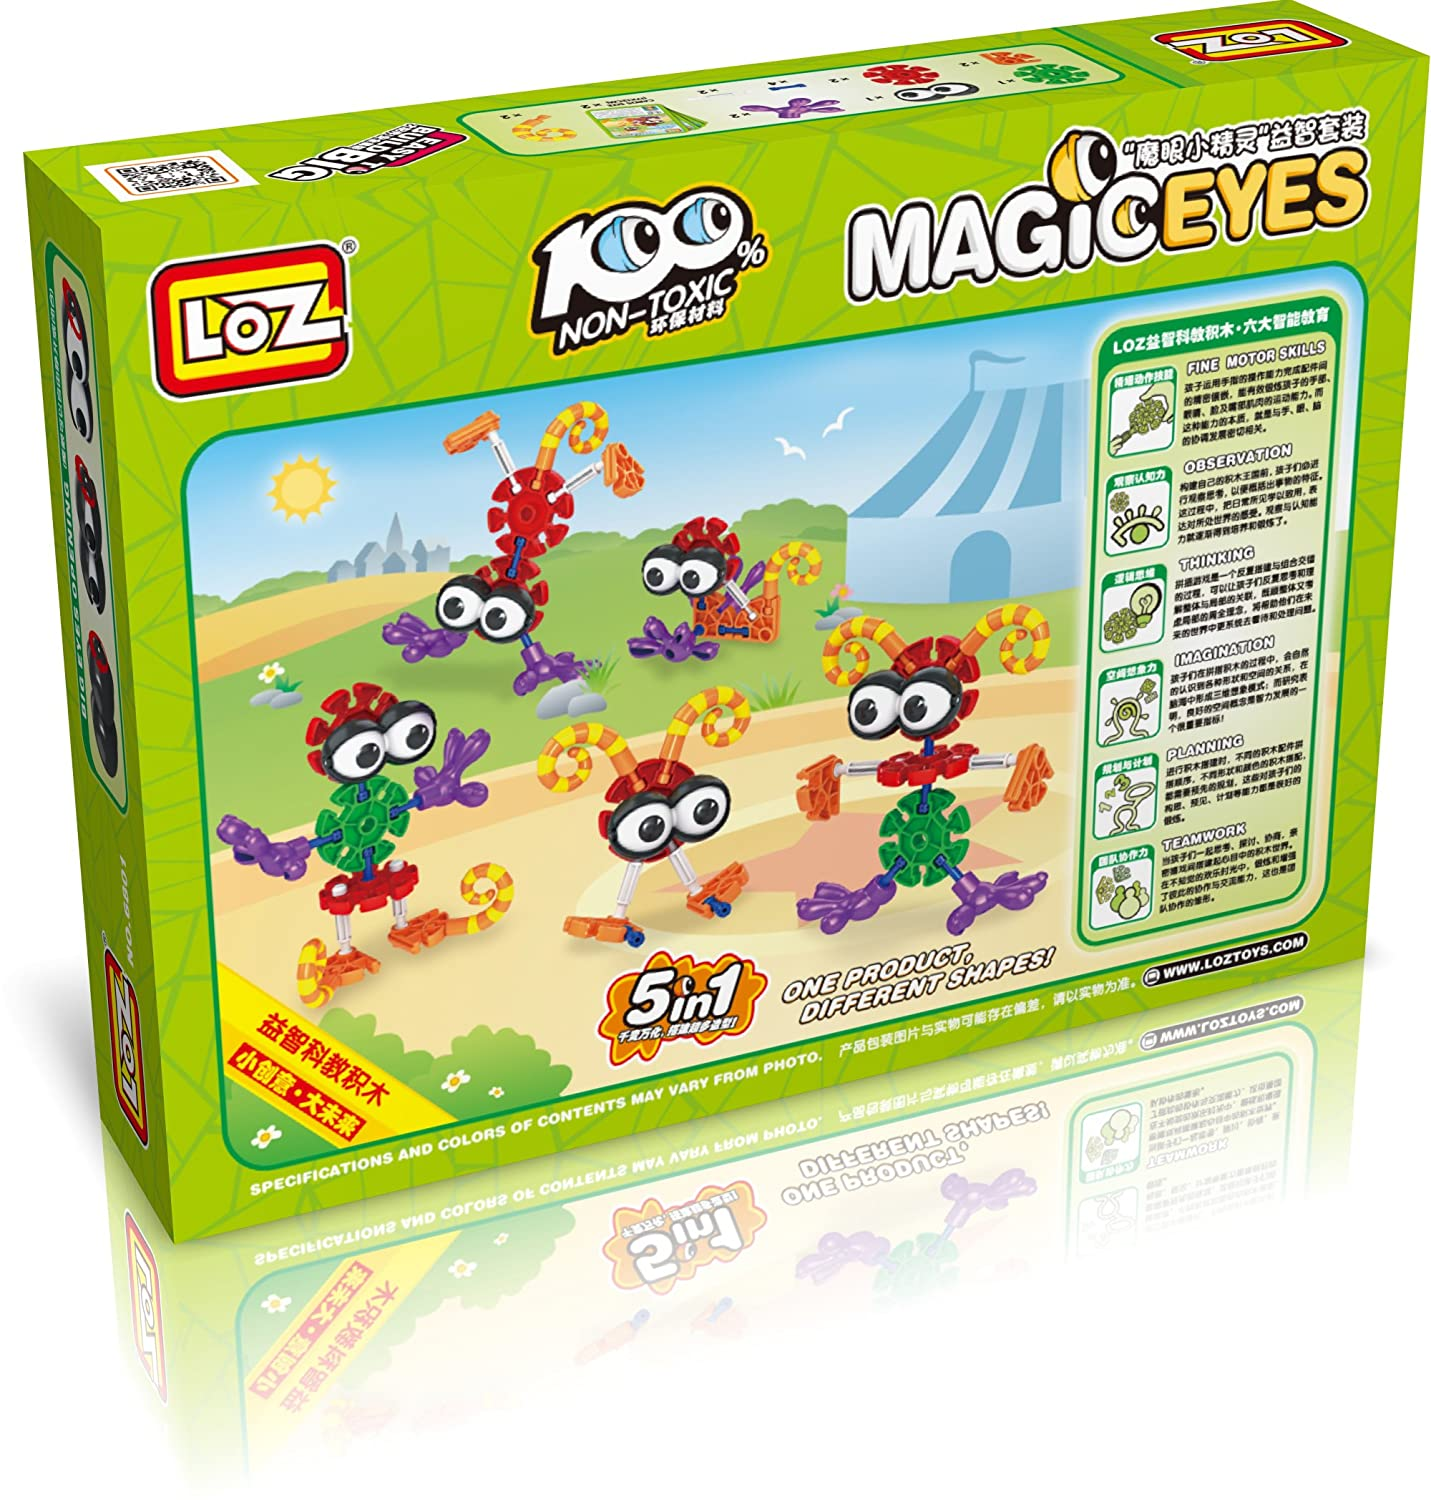 Learning Assembly Cards Included INOVATIVE GAMES B012OIN14M Park Fun Kids Magic Eye 5-In-1 18pcs Set Compare To Kids Knex Building Sets